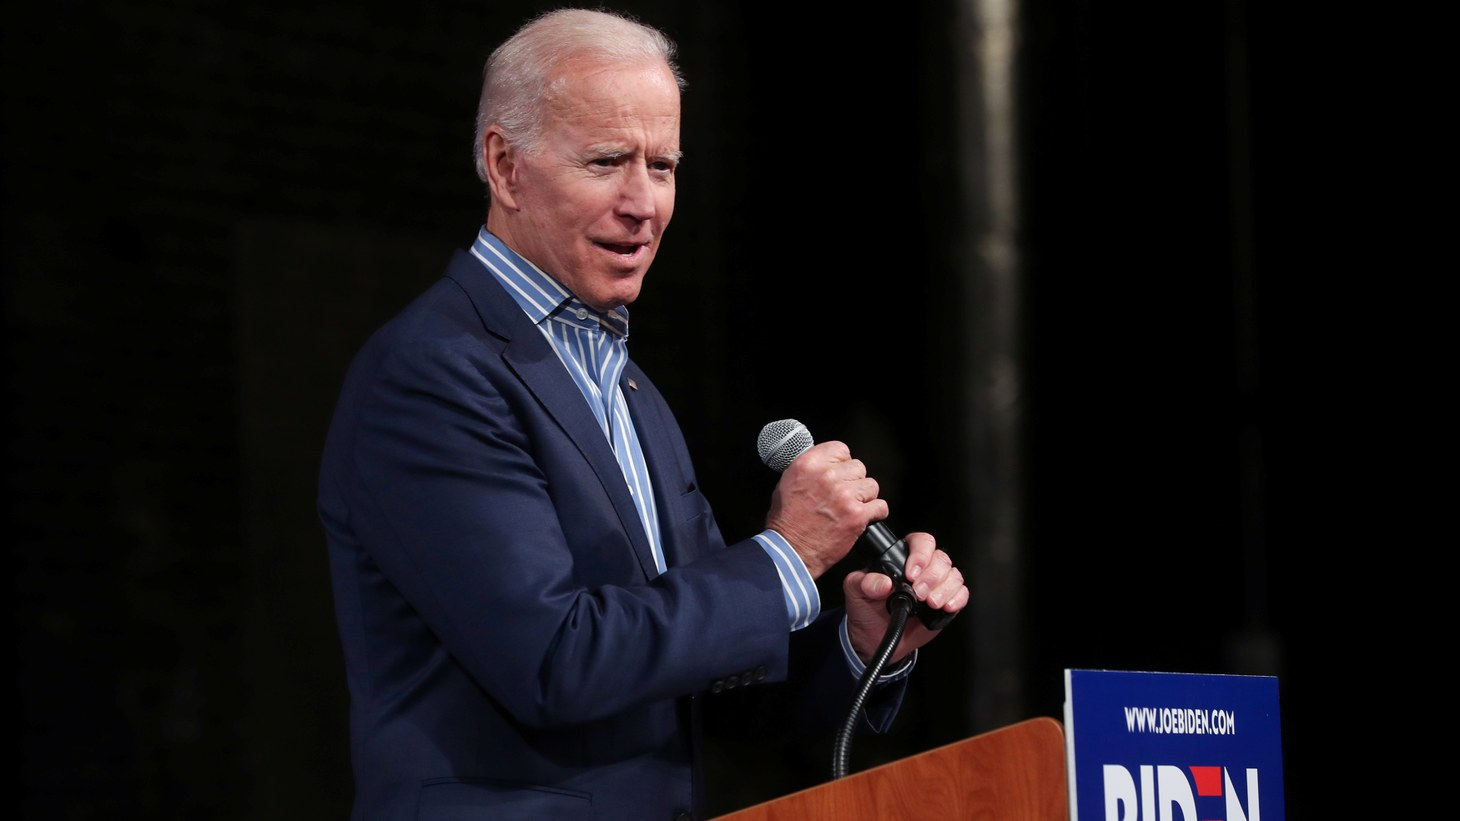 U.S. Democratic presidential candidate former Vice President Joe Biden holds a campaign stop in Des Moines, Iowa, U.S. May 1, 2019.